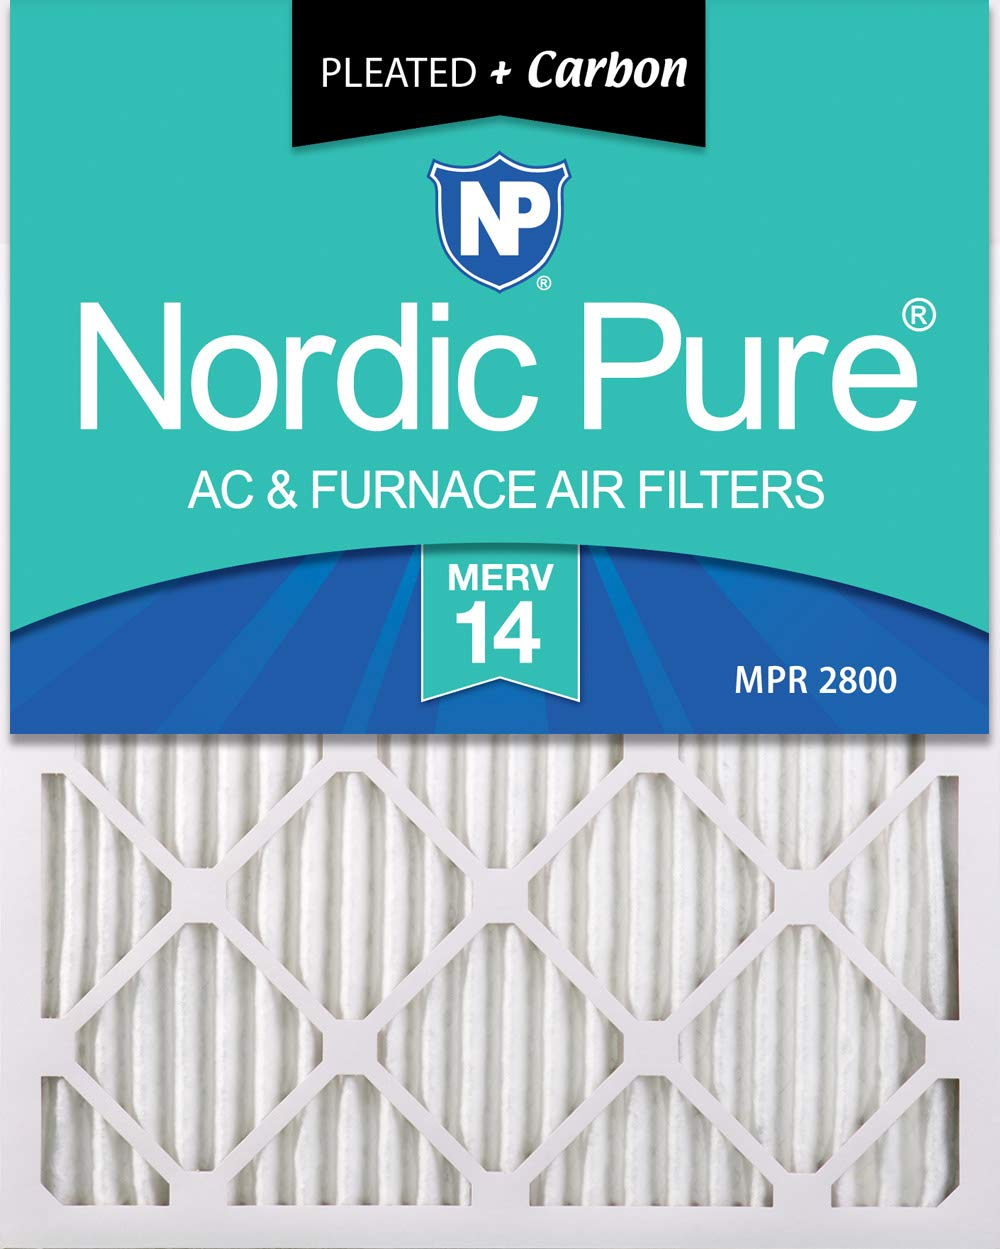 Nordic Pure 20x30x1 MERV 14 Plus Carbon Pleated AC Furnace Air Filters, 2 PACK, 2 Piece